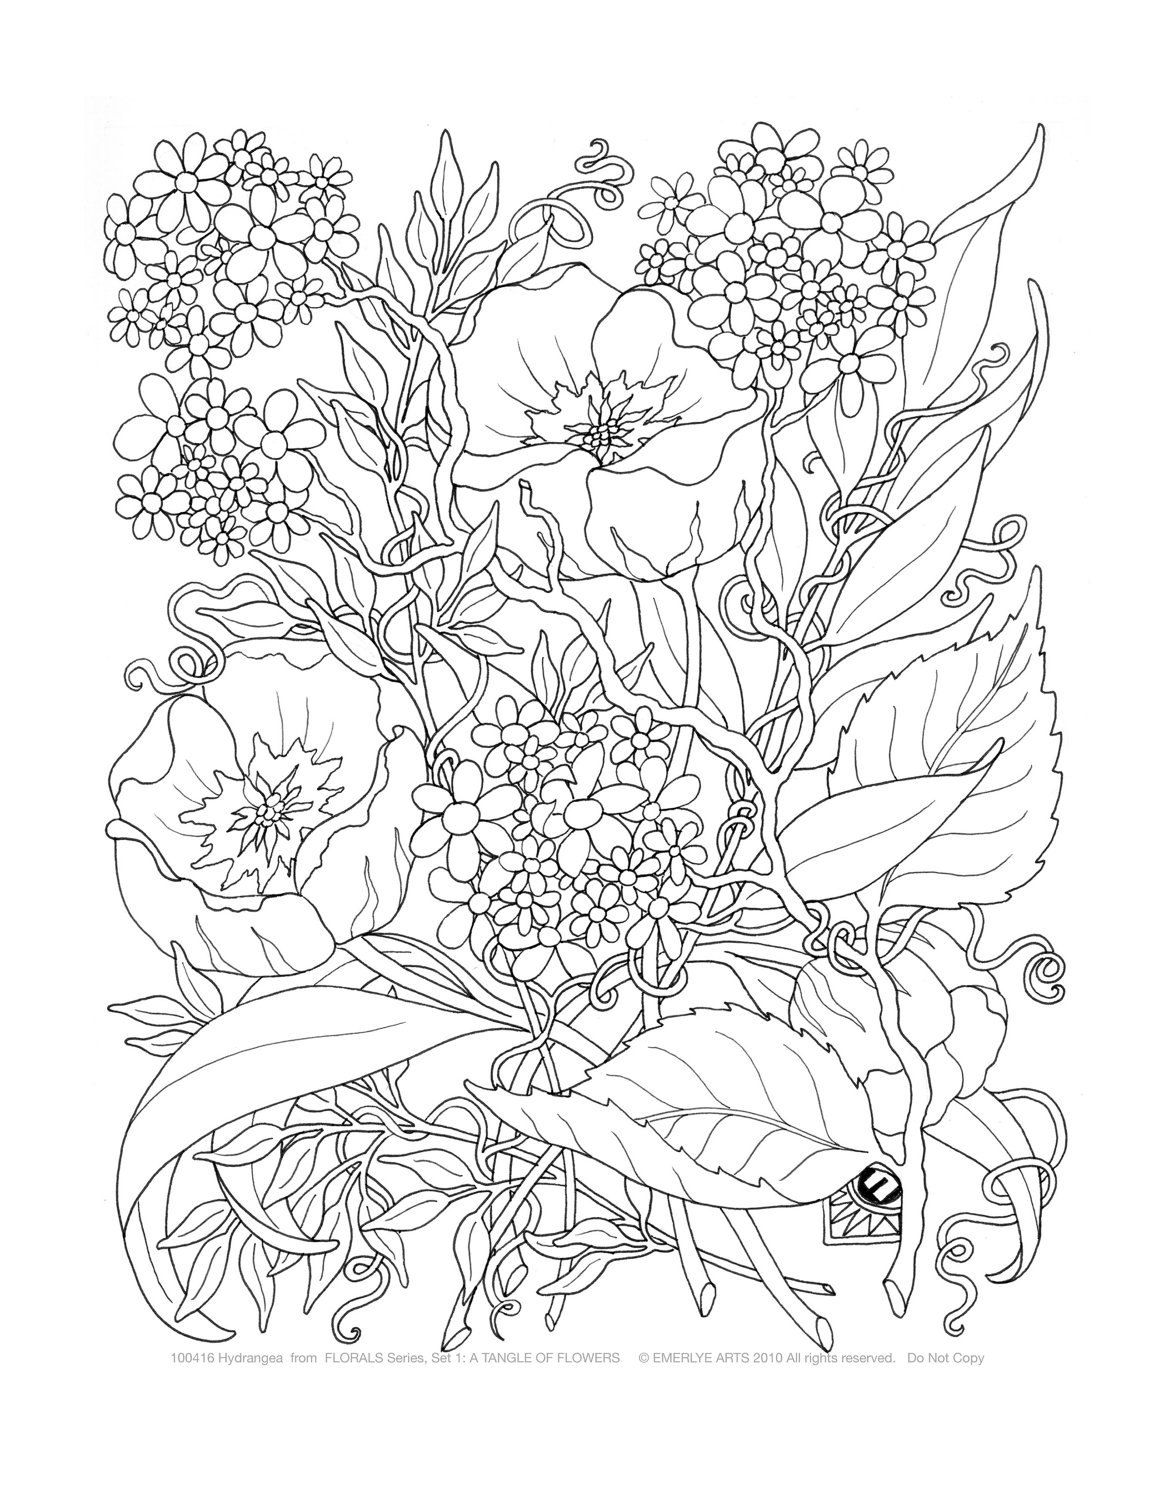 coloring pages for seniors funny stoner coloring page for adults illustration stoner for seniors coloring pages